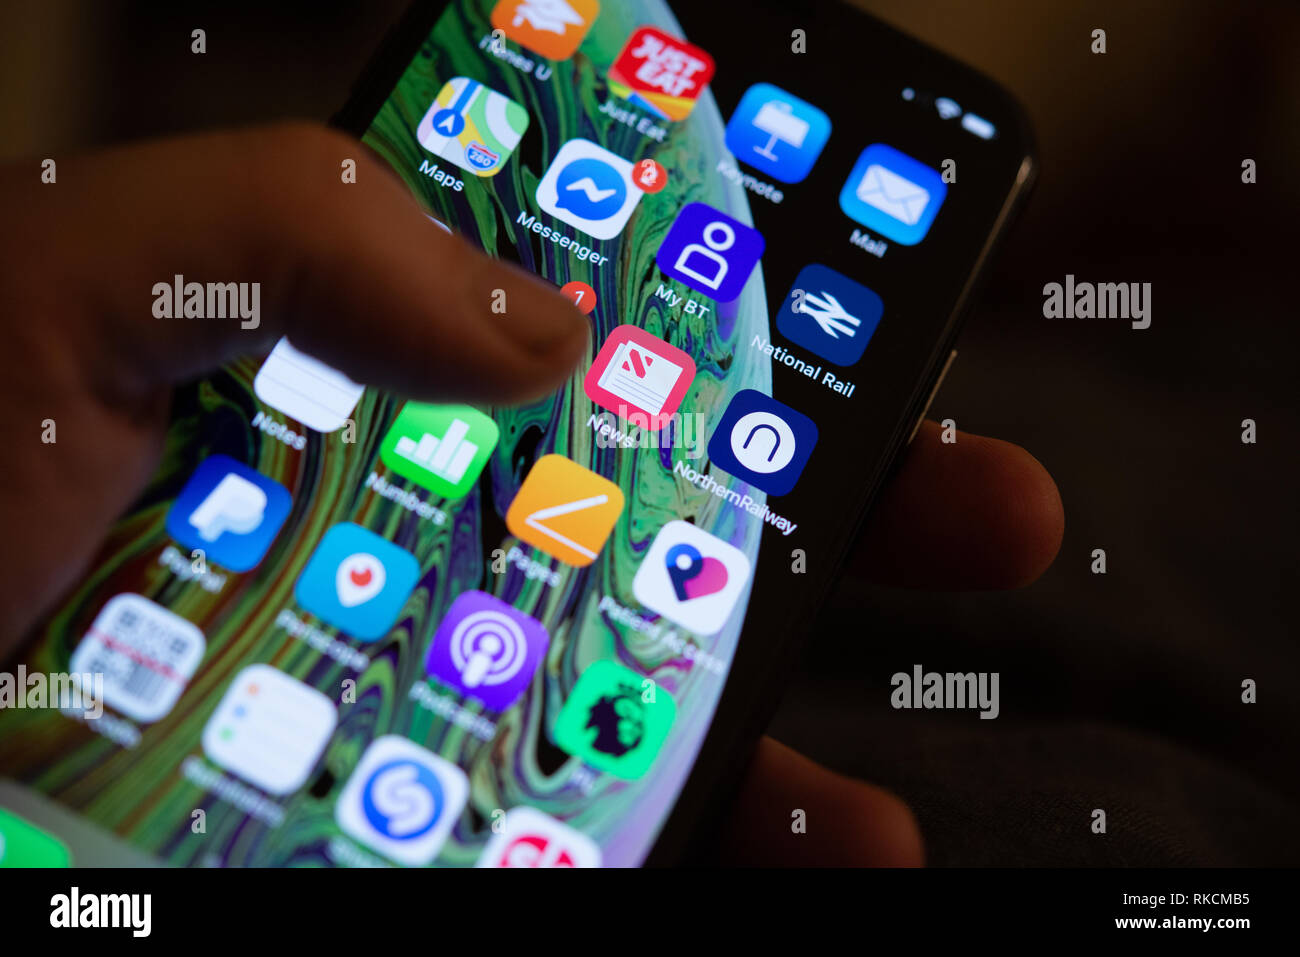 A person holds an iPhone XS mobile phone in Stockport, United Kingdom on Monday, February 11, 2019. Apple have asked app developers to guarantee that people's privacy, in regard to mobile phone usage, on mobile phones or face removal from their App Store according to a report on The Independent website. Credit: Jonathan Nicholson/Alamy Live News - Stock Image